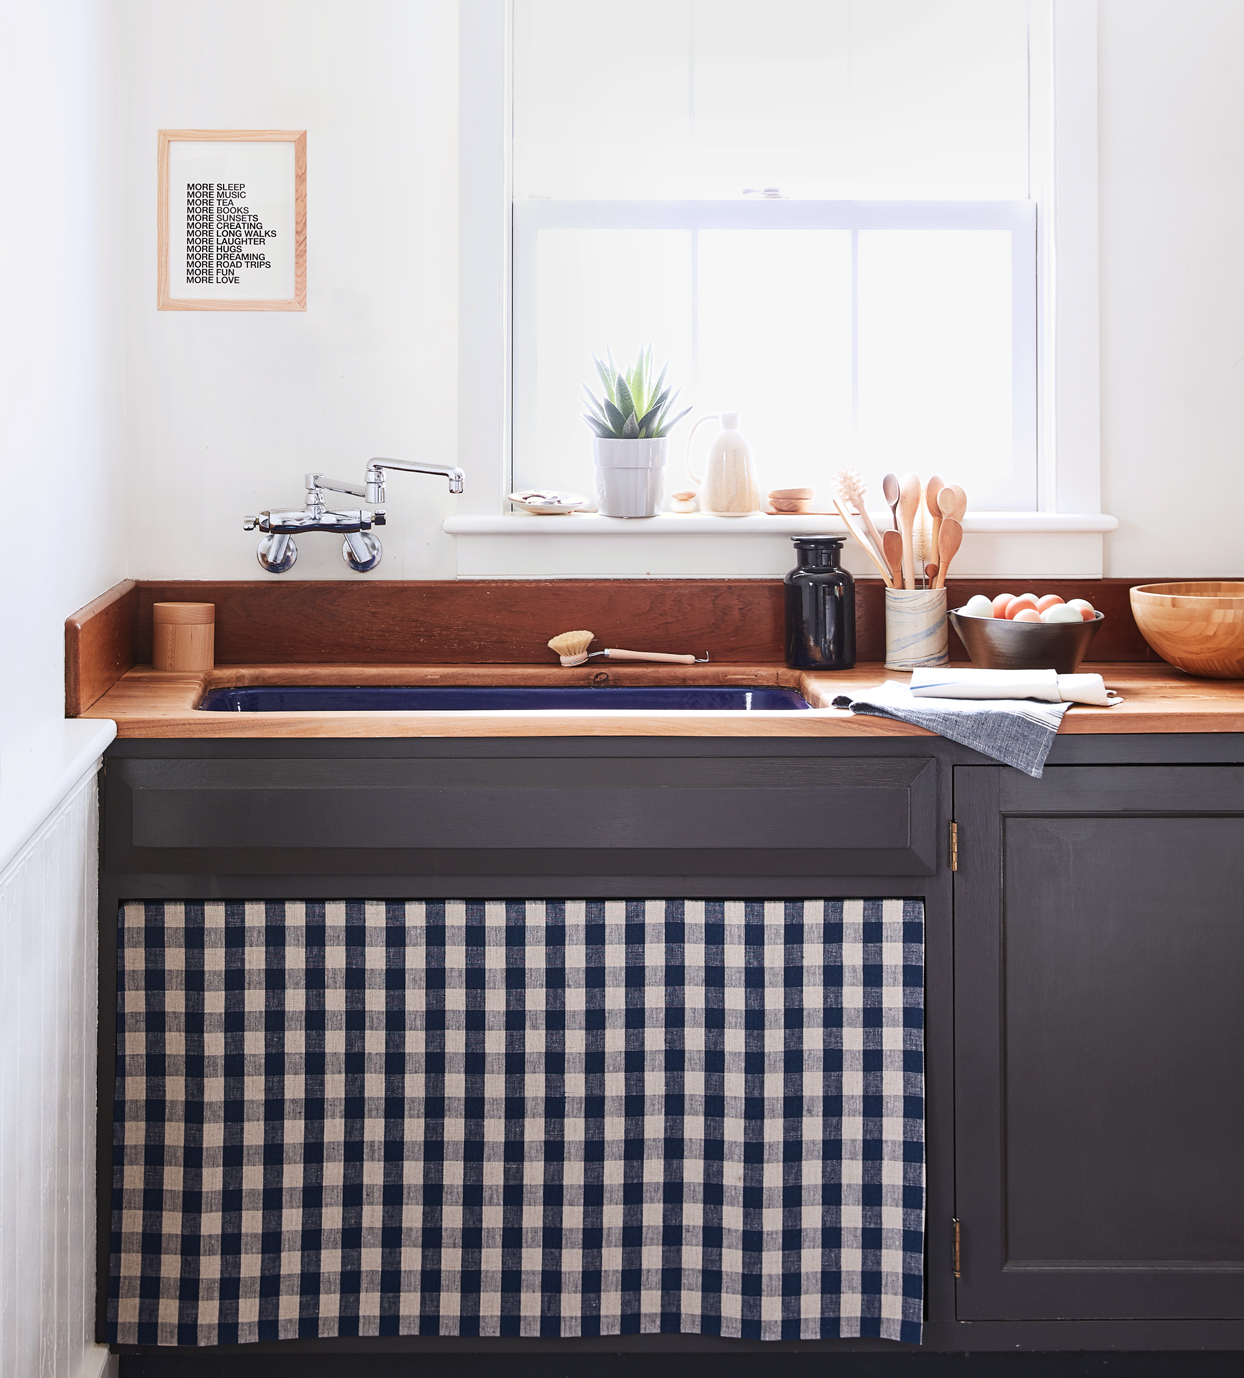 kitchen sink with decorative diy sink skirt